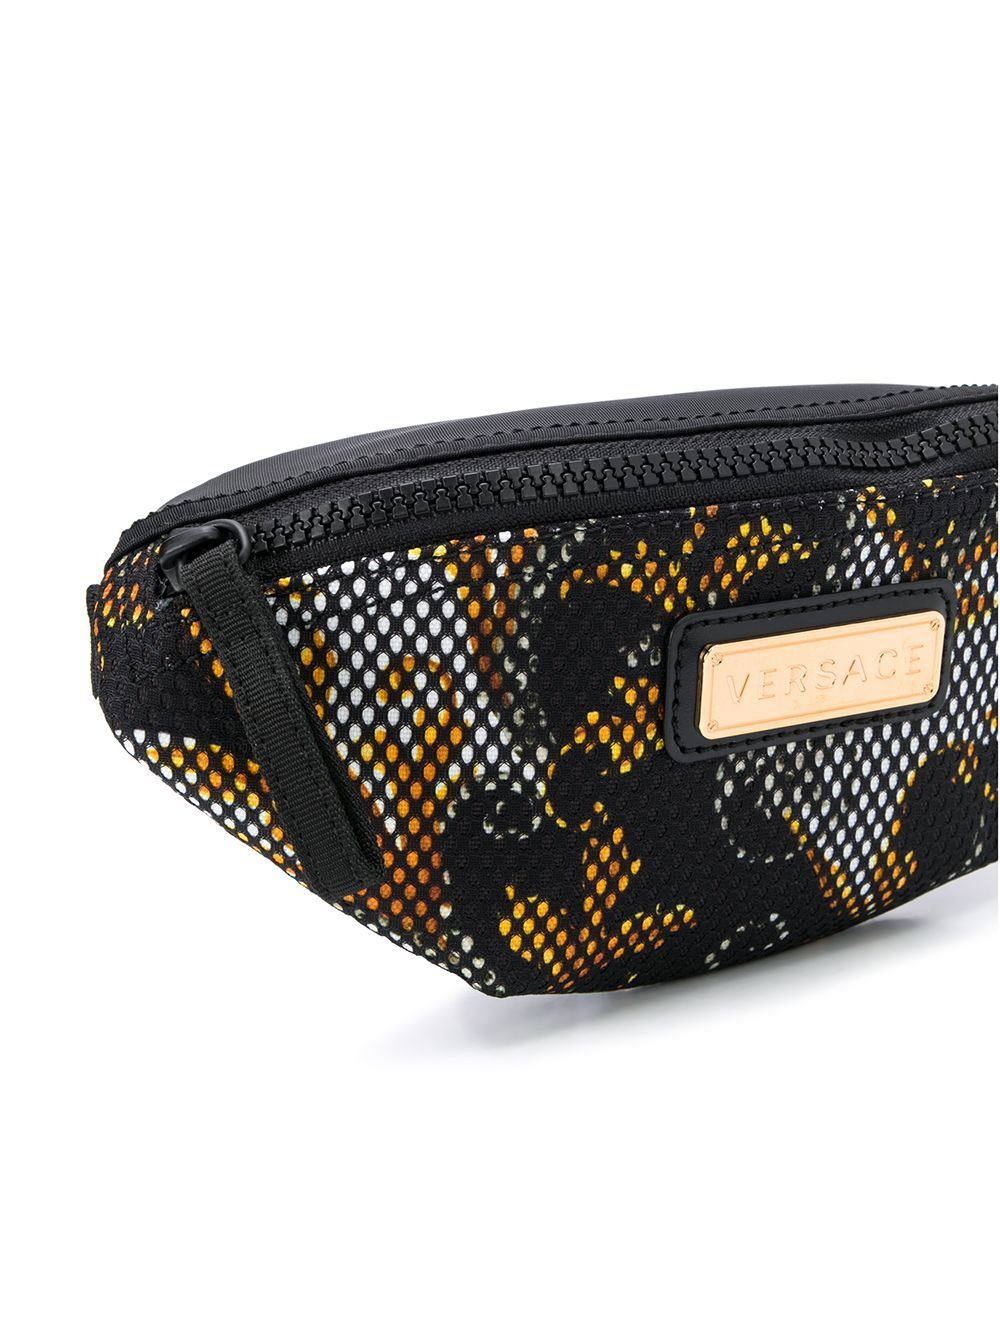 VERSACE KIDS Logo Plaque Belt Bag Black